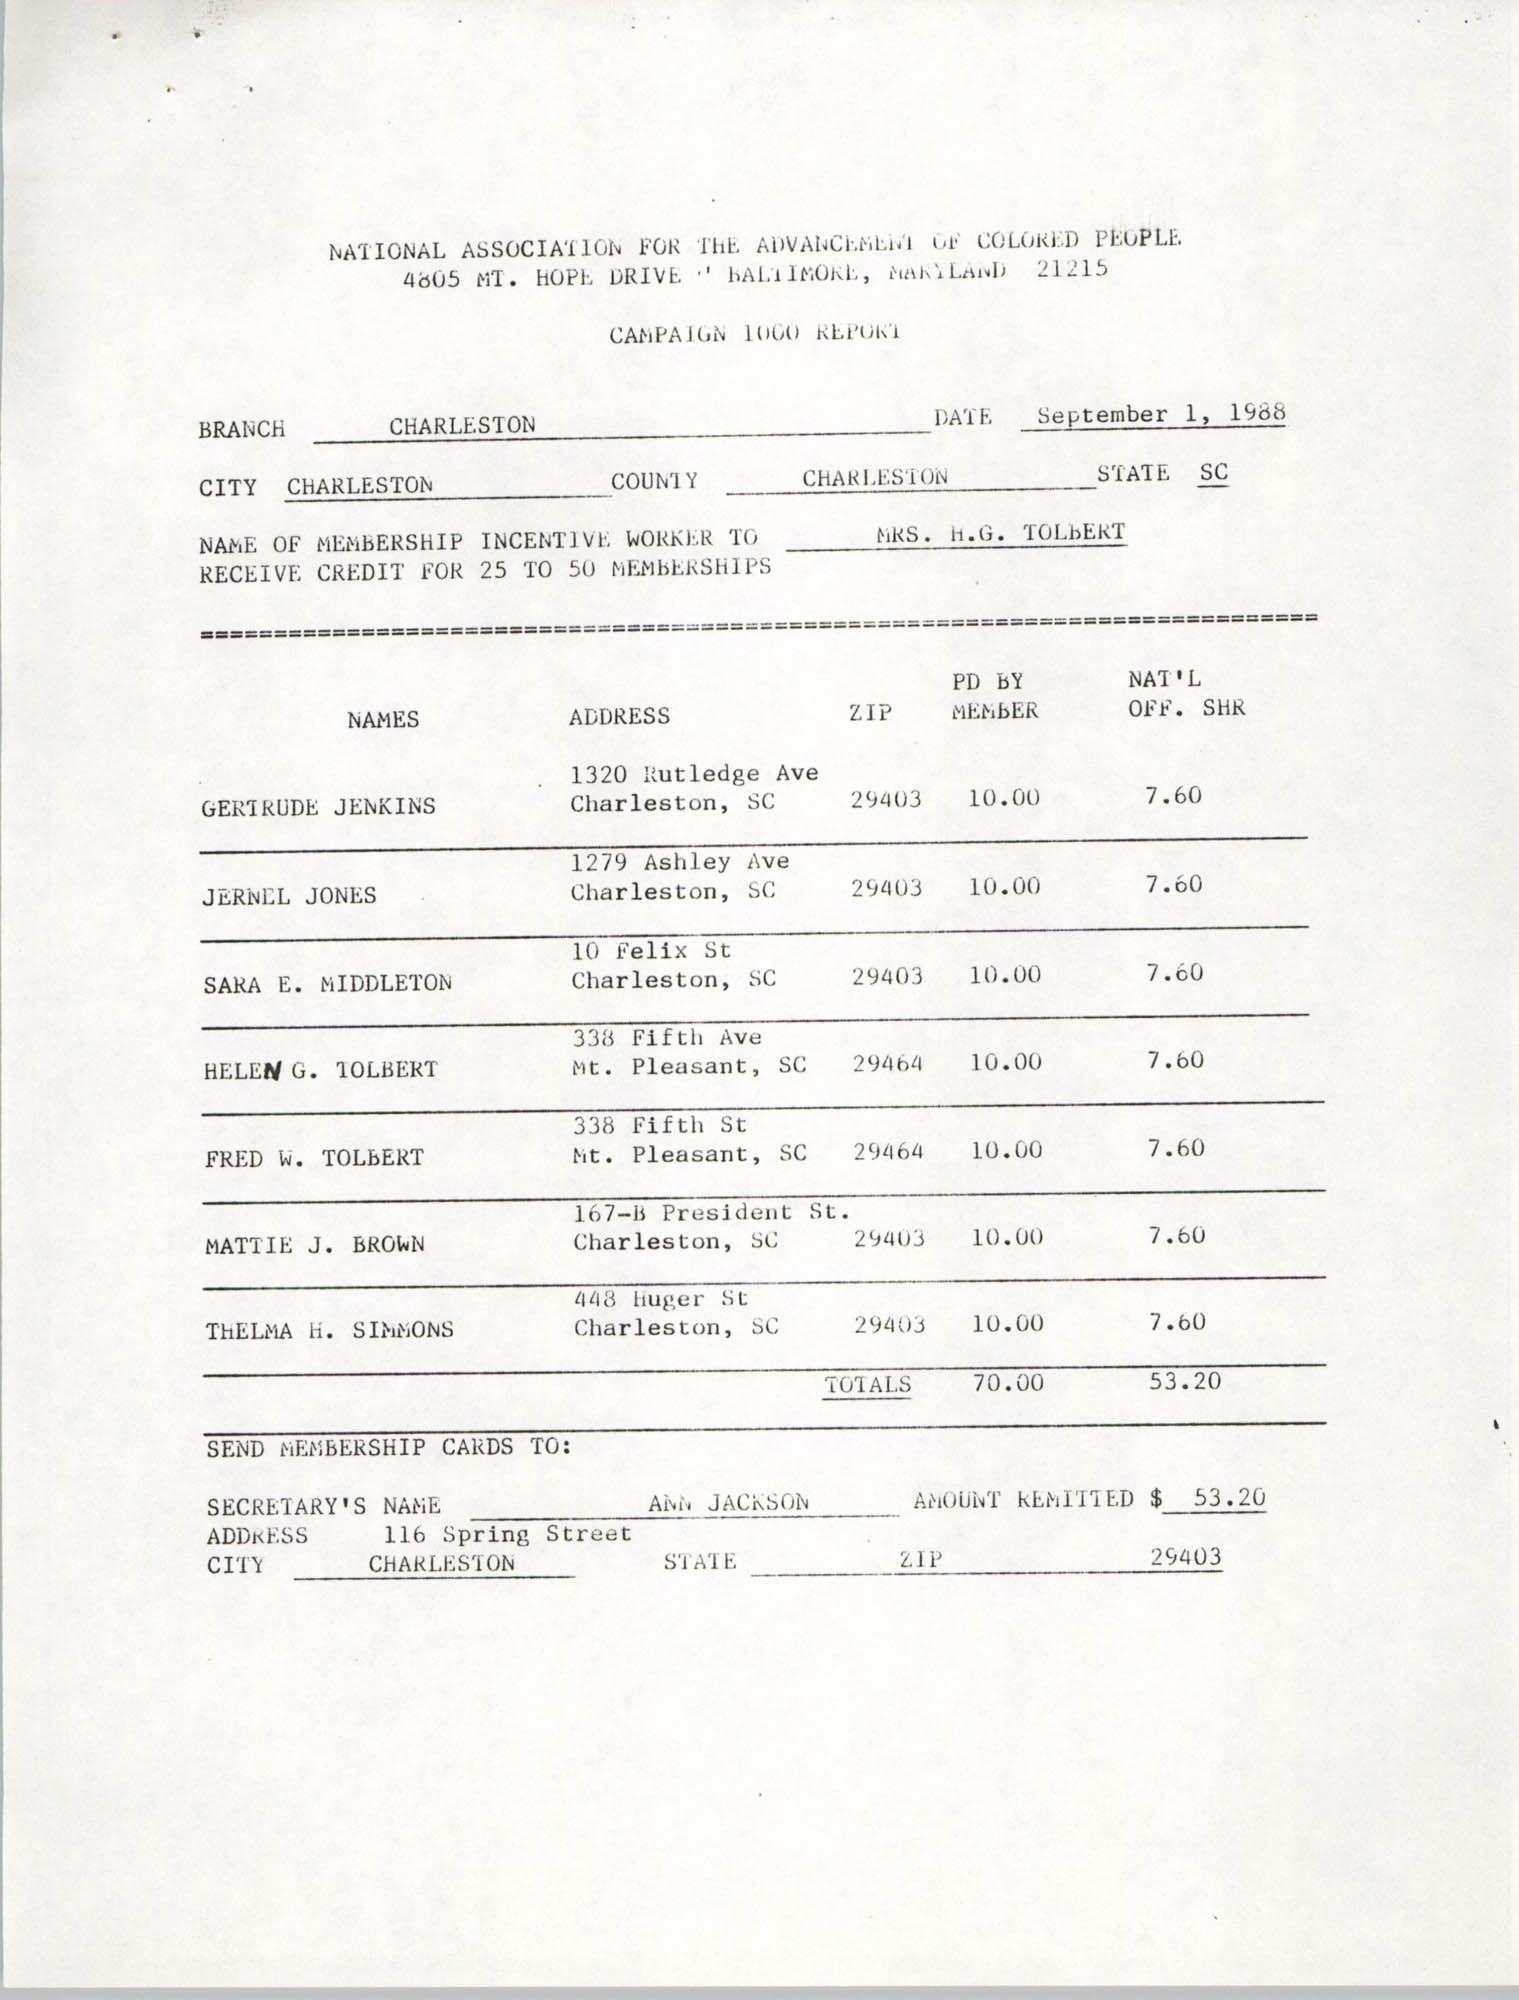 Campaign 1000 Report, Mrs. H.G. Tolbert, Charleston Branch of the NAACP, September 1, 1988